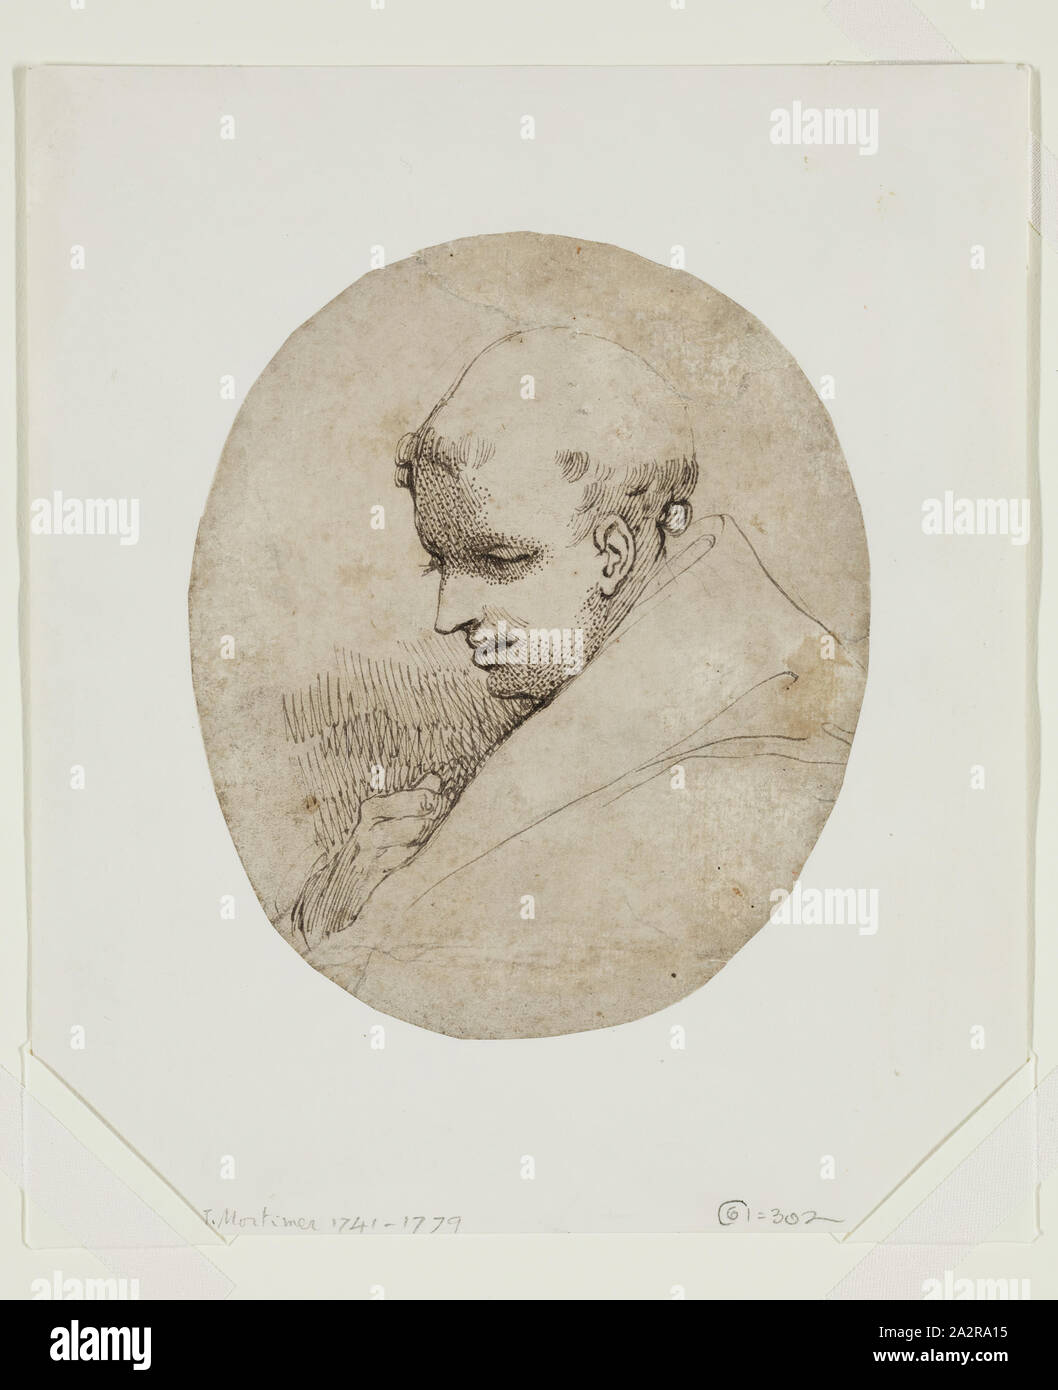 John Hamilton Mortimer, English, 1741-1779, A Monk, between 1770 and 1775, pen and black ink on mottled laid paper, Sheet: 5 3/4 × 4 7/8 inches (14.6 × 12.4 cm Stock Photo